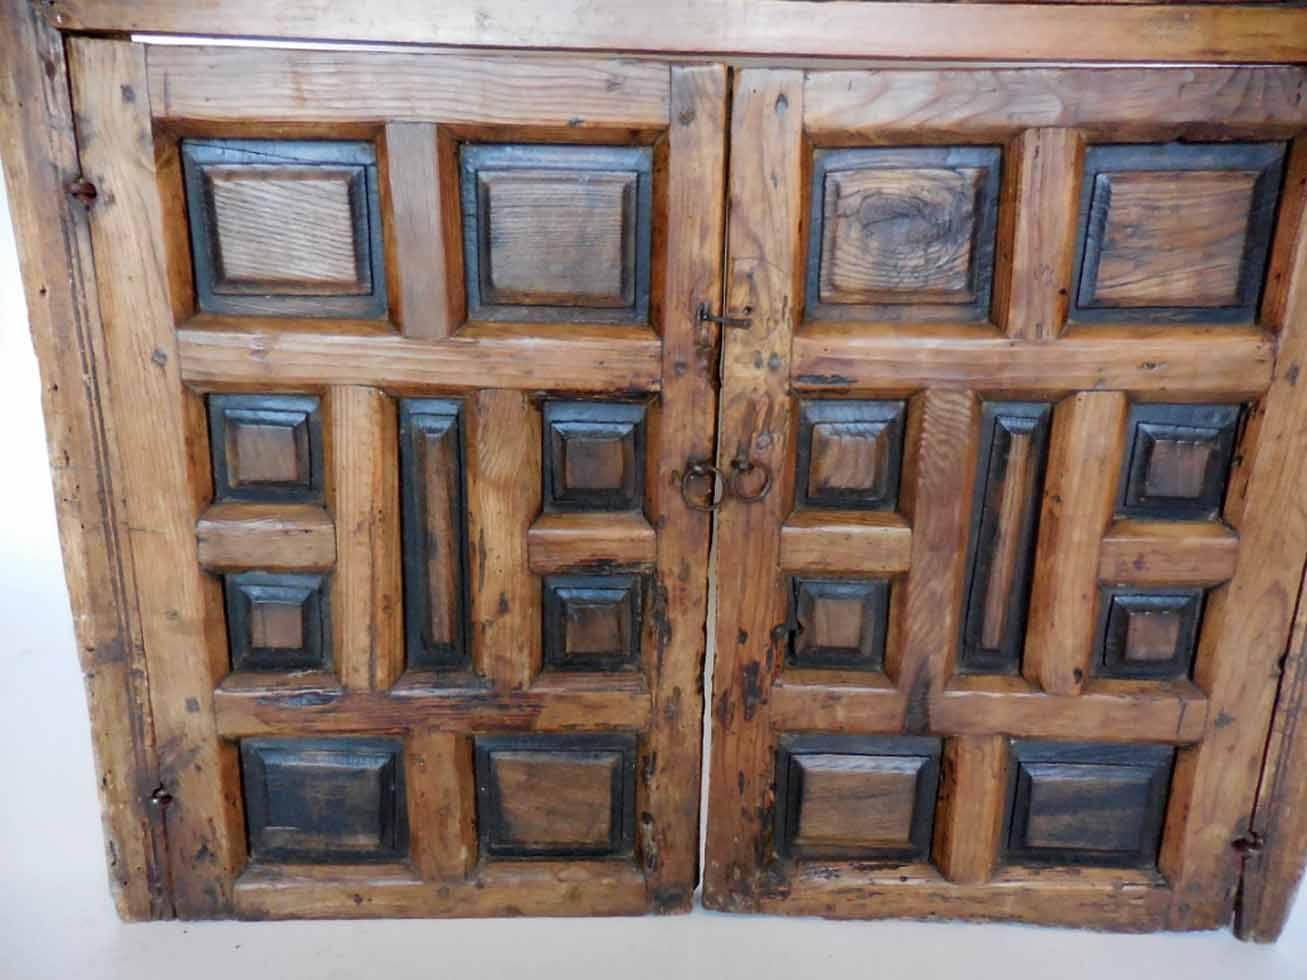 18th century wooden window shutters with panels and turned for 18th century window